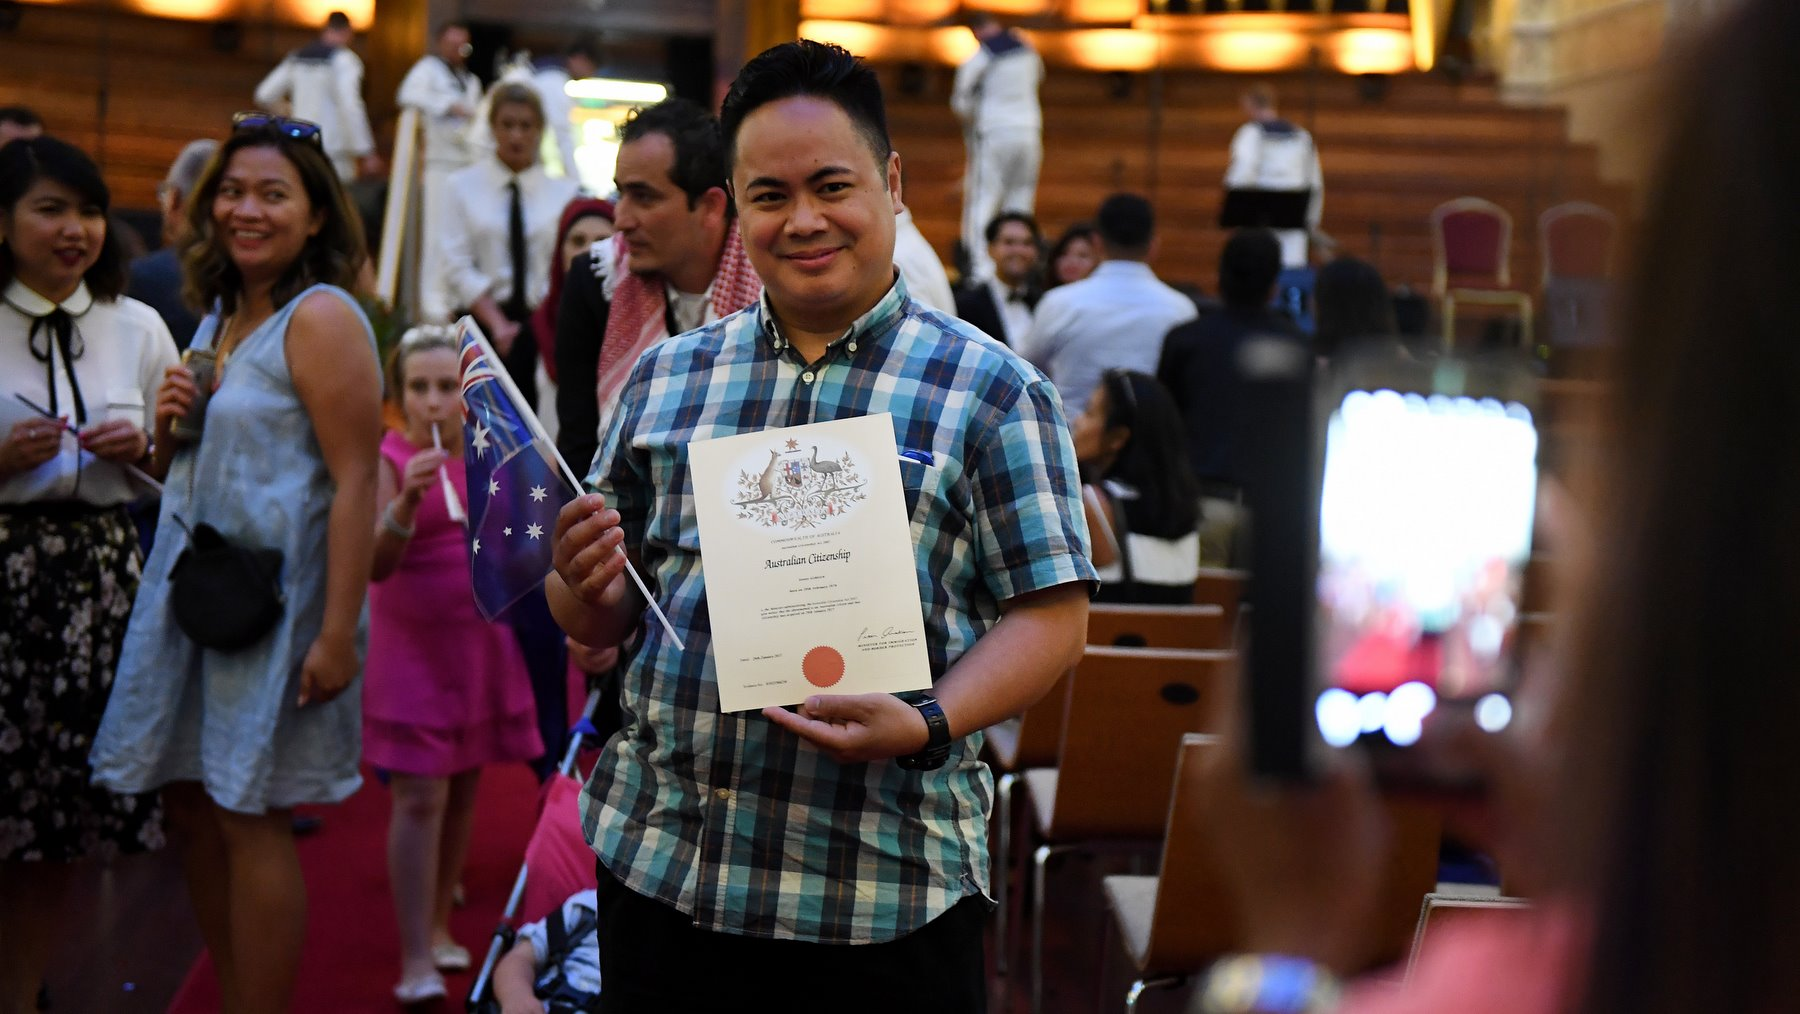 An Australian citizenship recipient poses for a photo after  a citizenship ceremony on Australia Day in Brisbane, Thursday, Jan. 26, 2017. (AAP Image/Dan Peled) NO ARCHIVING